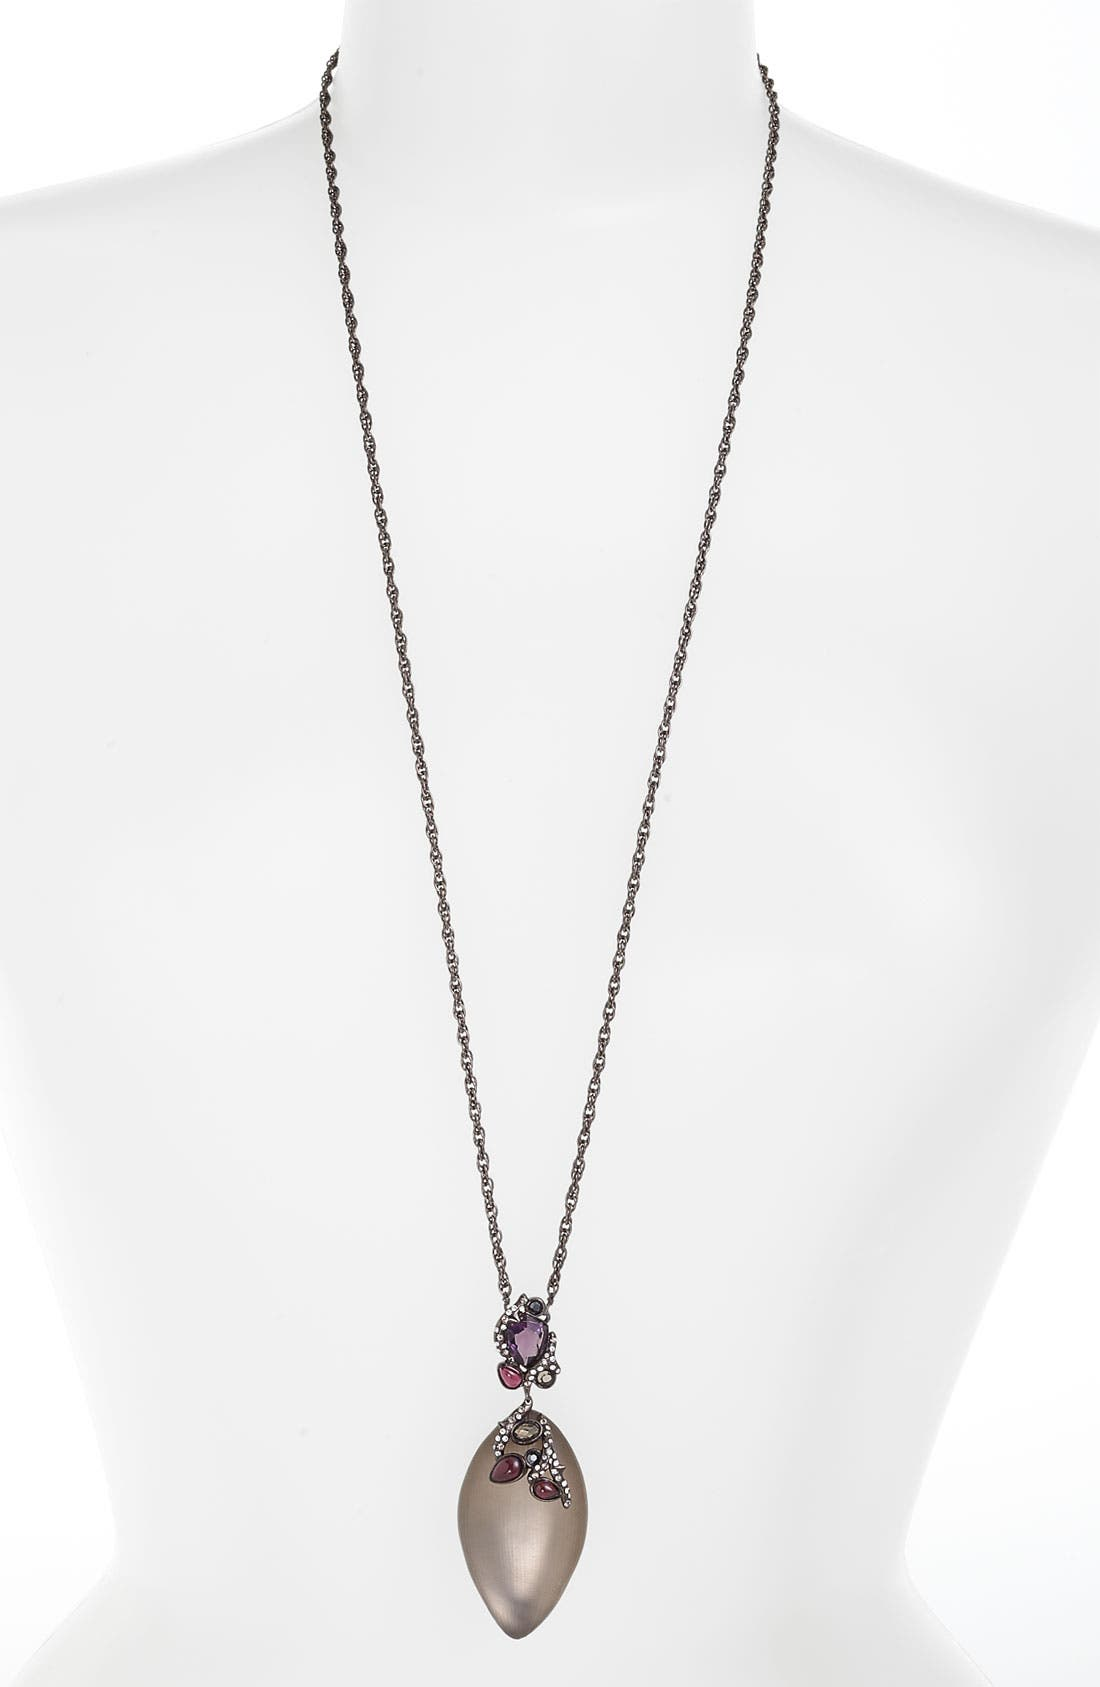 Main Image - Alexis Bittar 'Allegory' Gem Clustered Pendant Necklace (Nordstrom Exclusive)